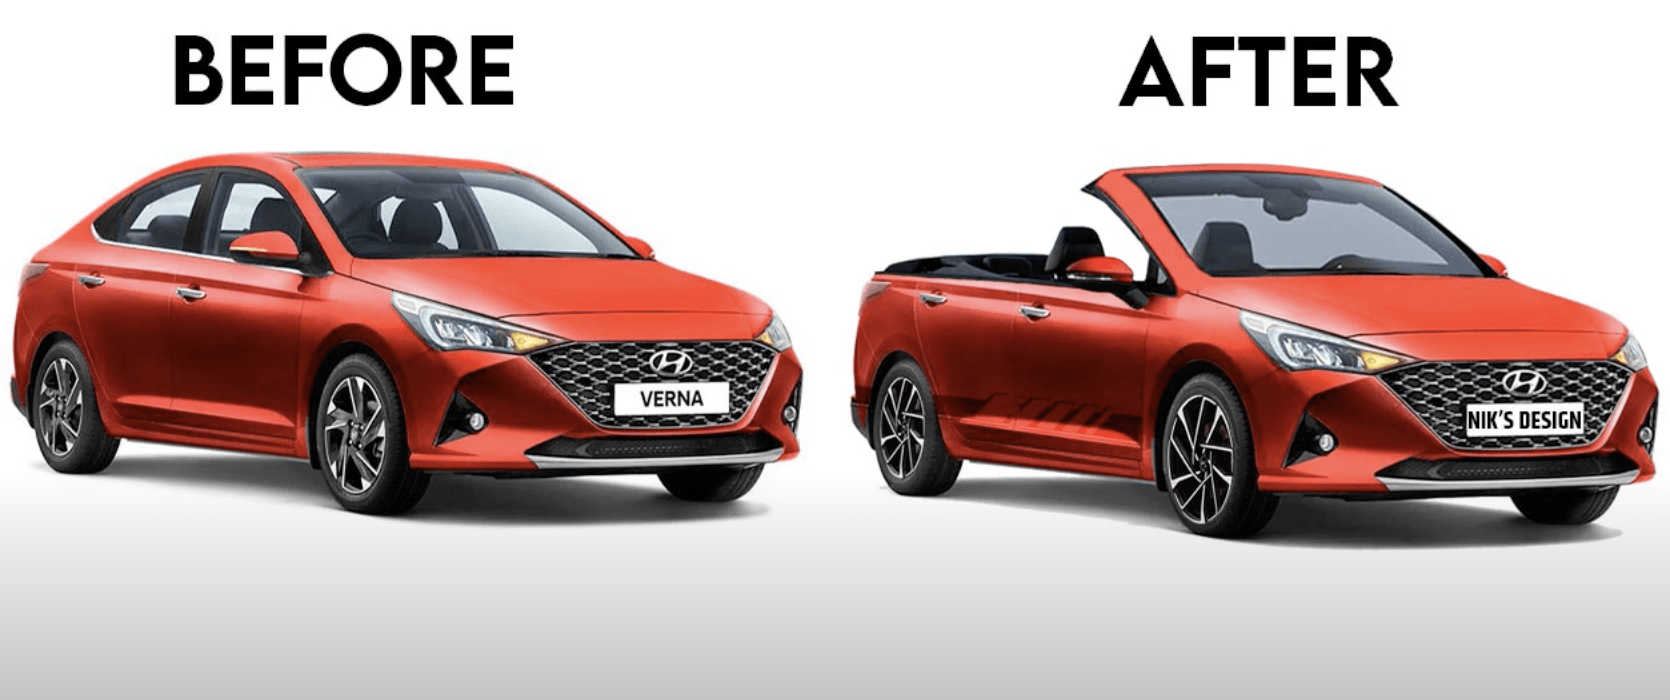 Hyundai Verna Rendered As A Convertible Looks Completely Dope